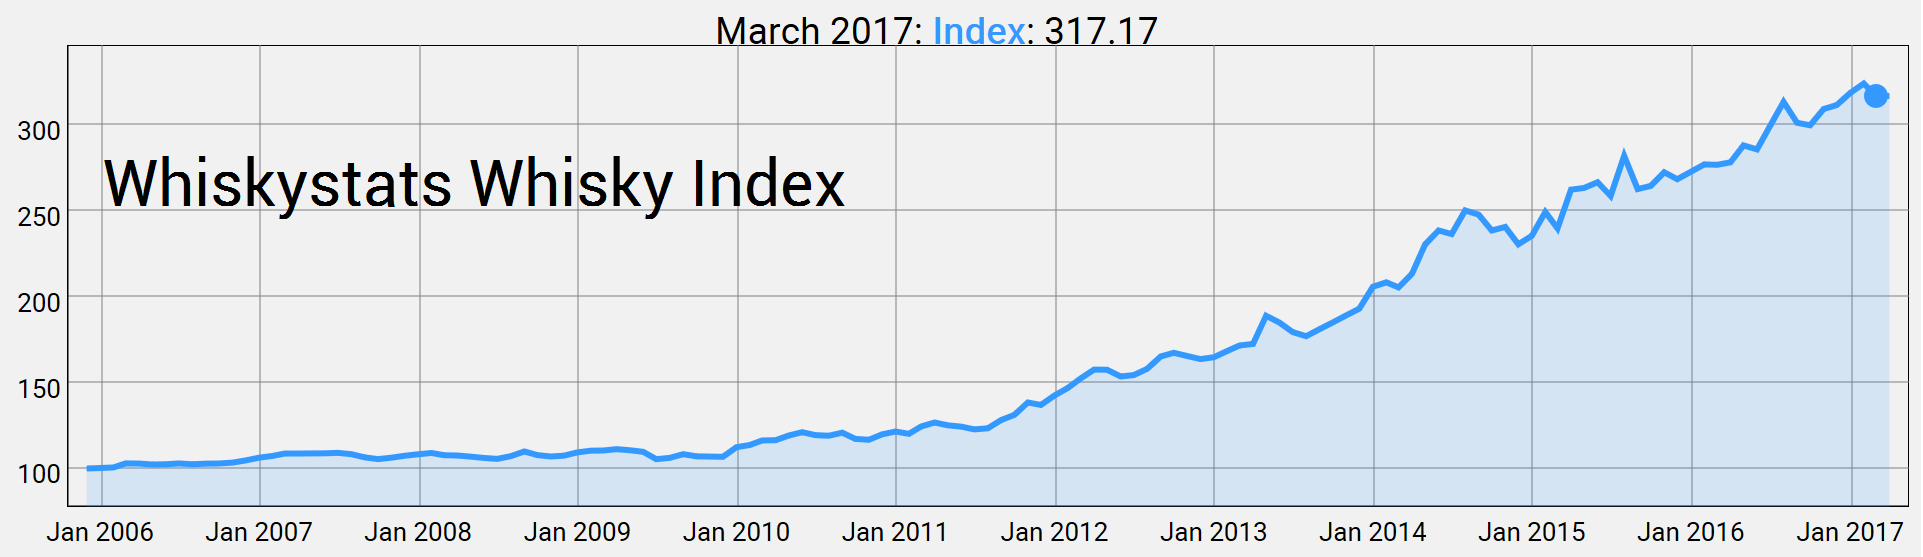 Whiskystats Whisky Index March 2017 title=